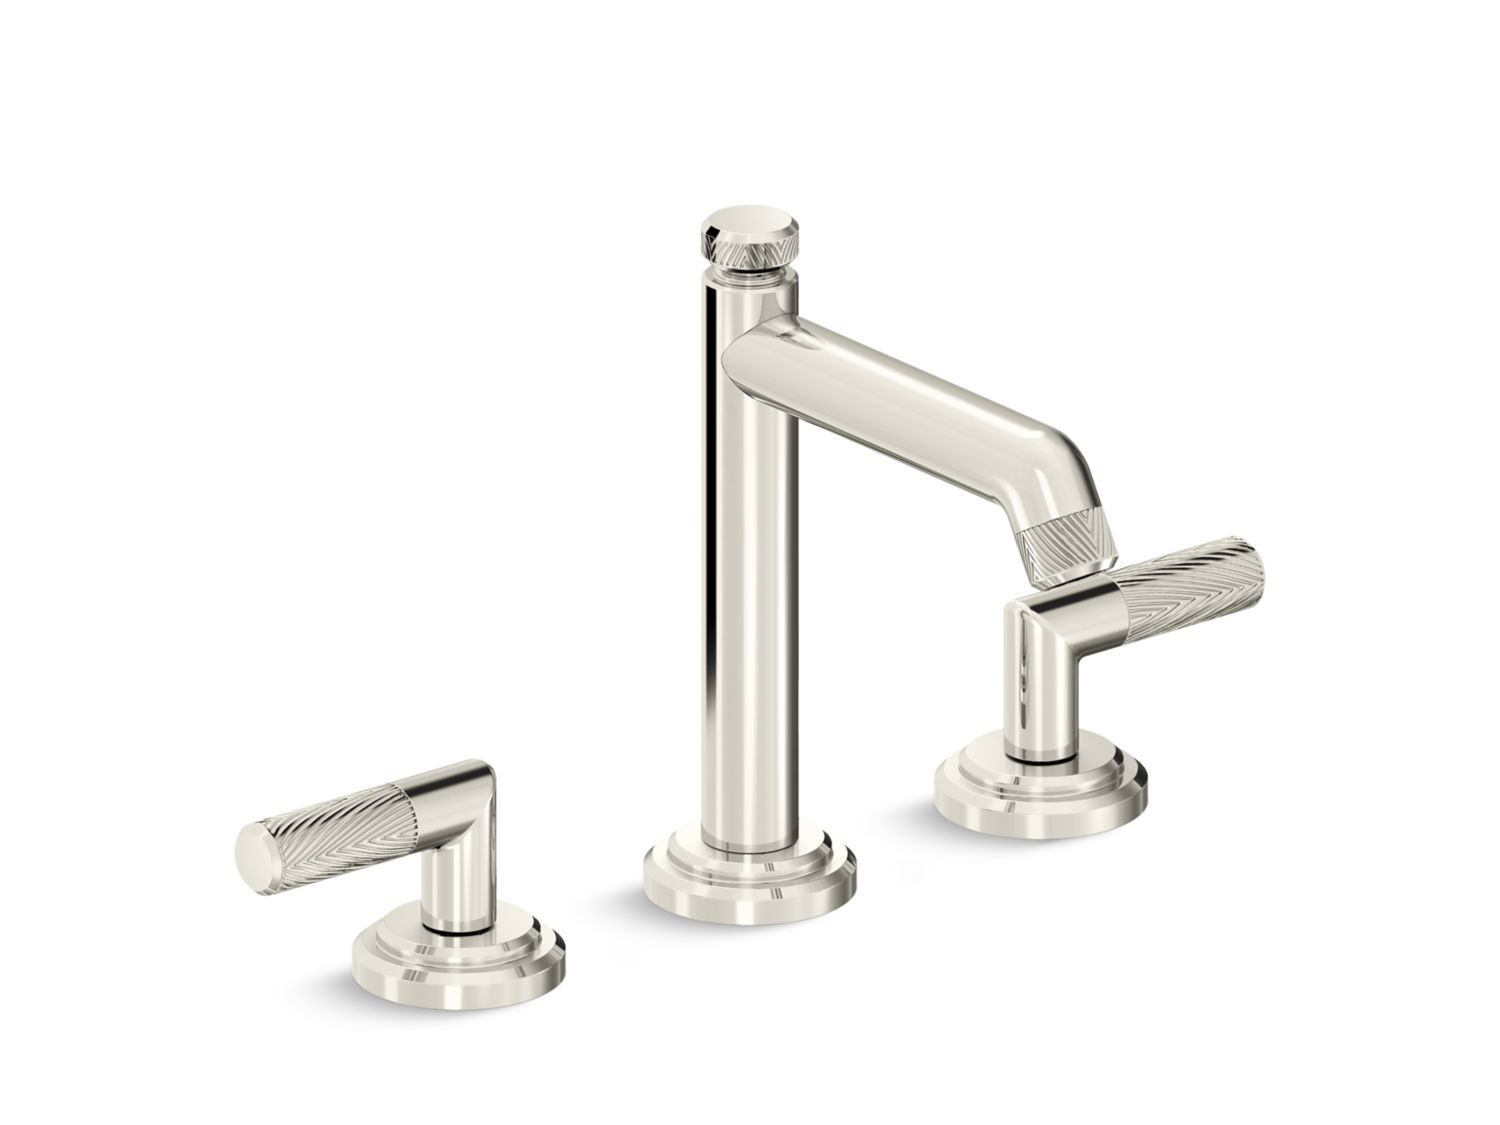 rgb hero lever spout se decorative low pw bathroom faucets sink cp of perfect faucet mother pearl look handles per kallista